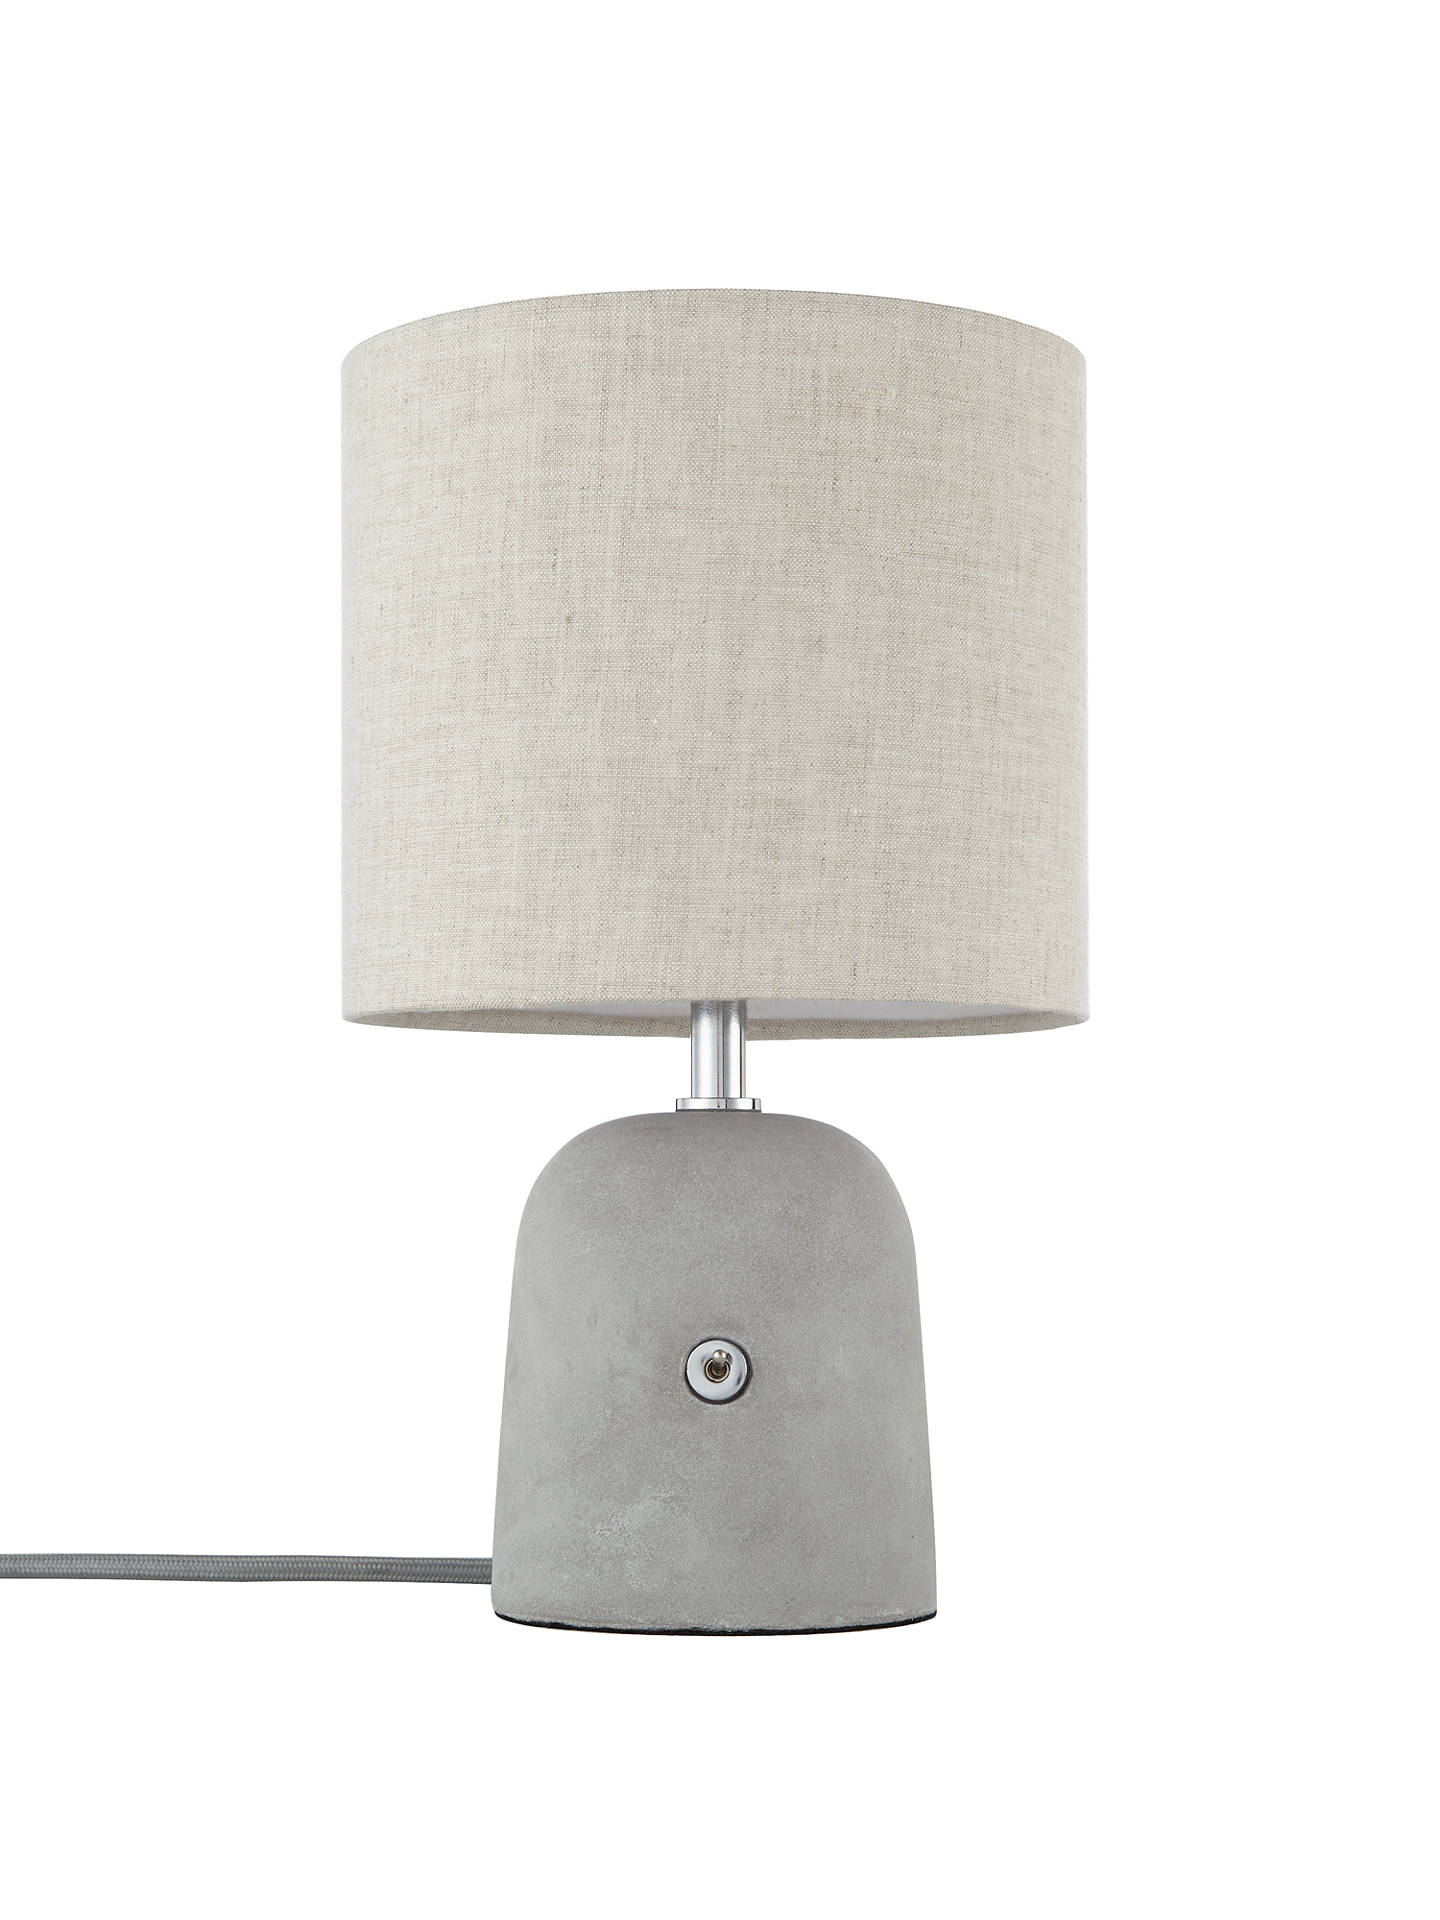 John Lewis Partners Meryl Concrete Switch Table Lamp Grey At With Base Buyjohn Online Johnlewis